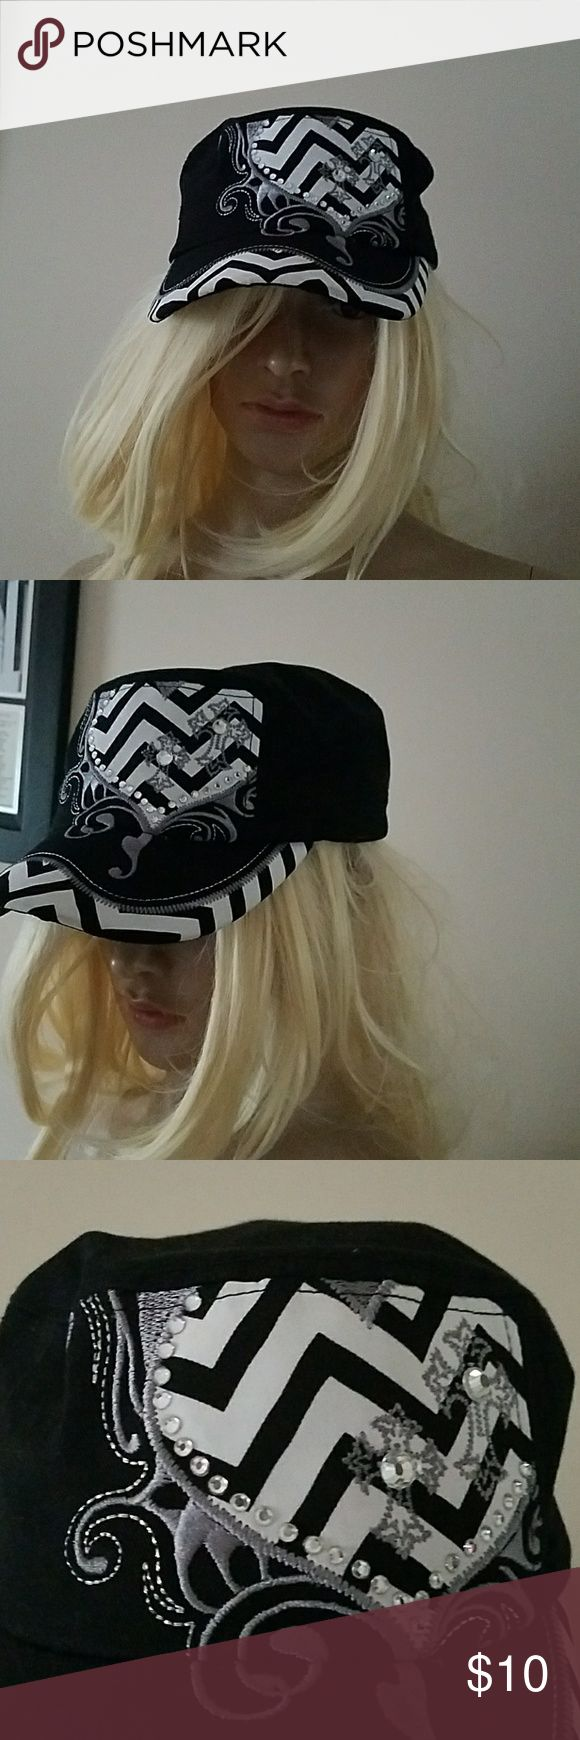 Blingy black military hat NWOT OS Blingy black chevron stripe military hat NWOT adjustable Accessories Hats